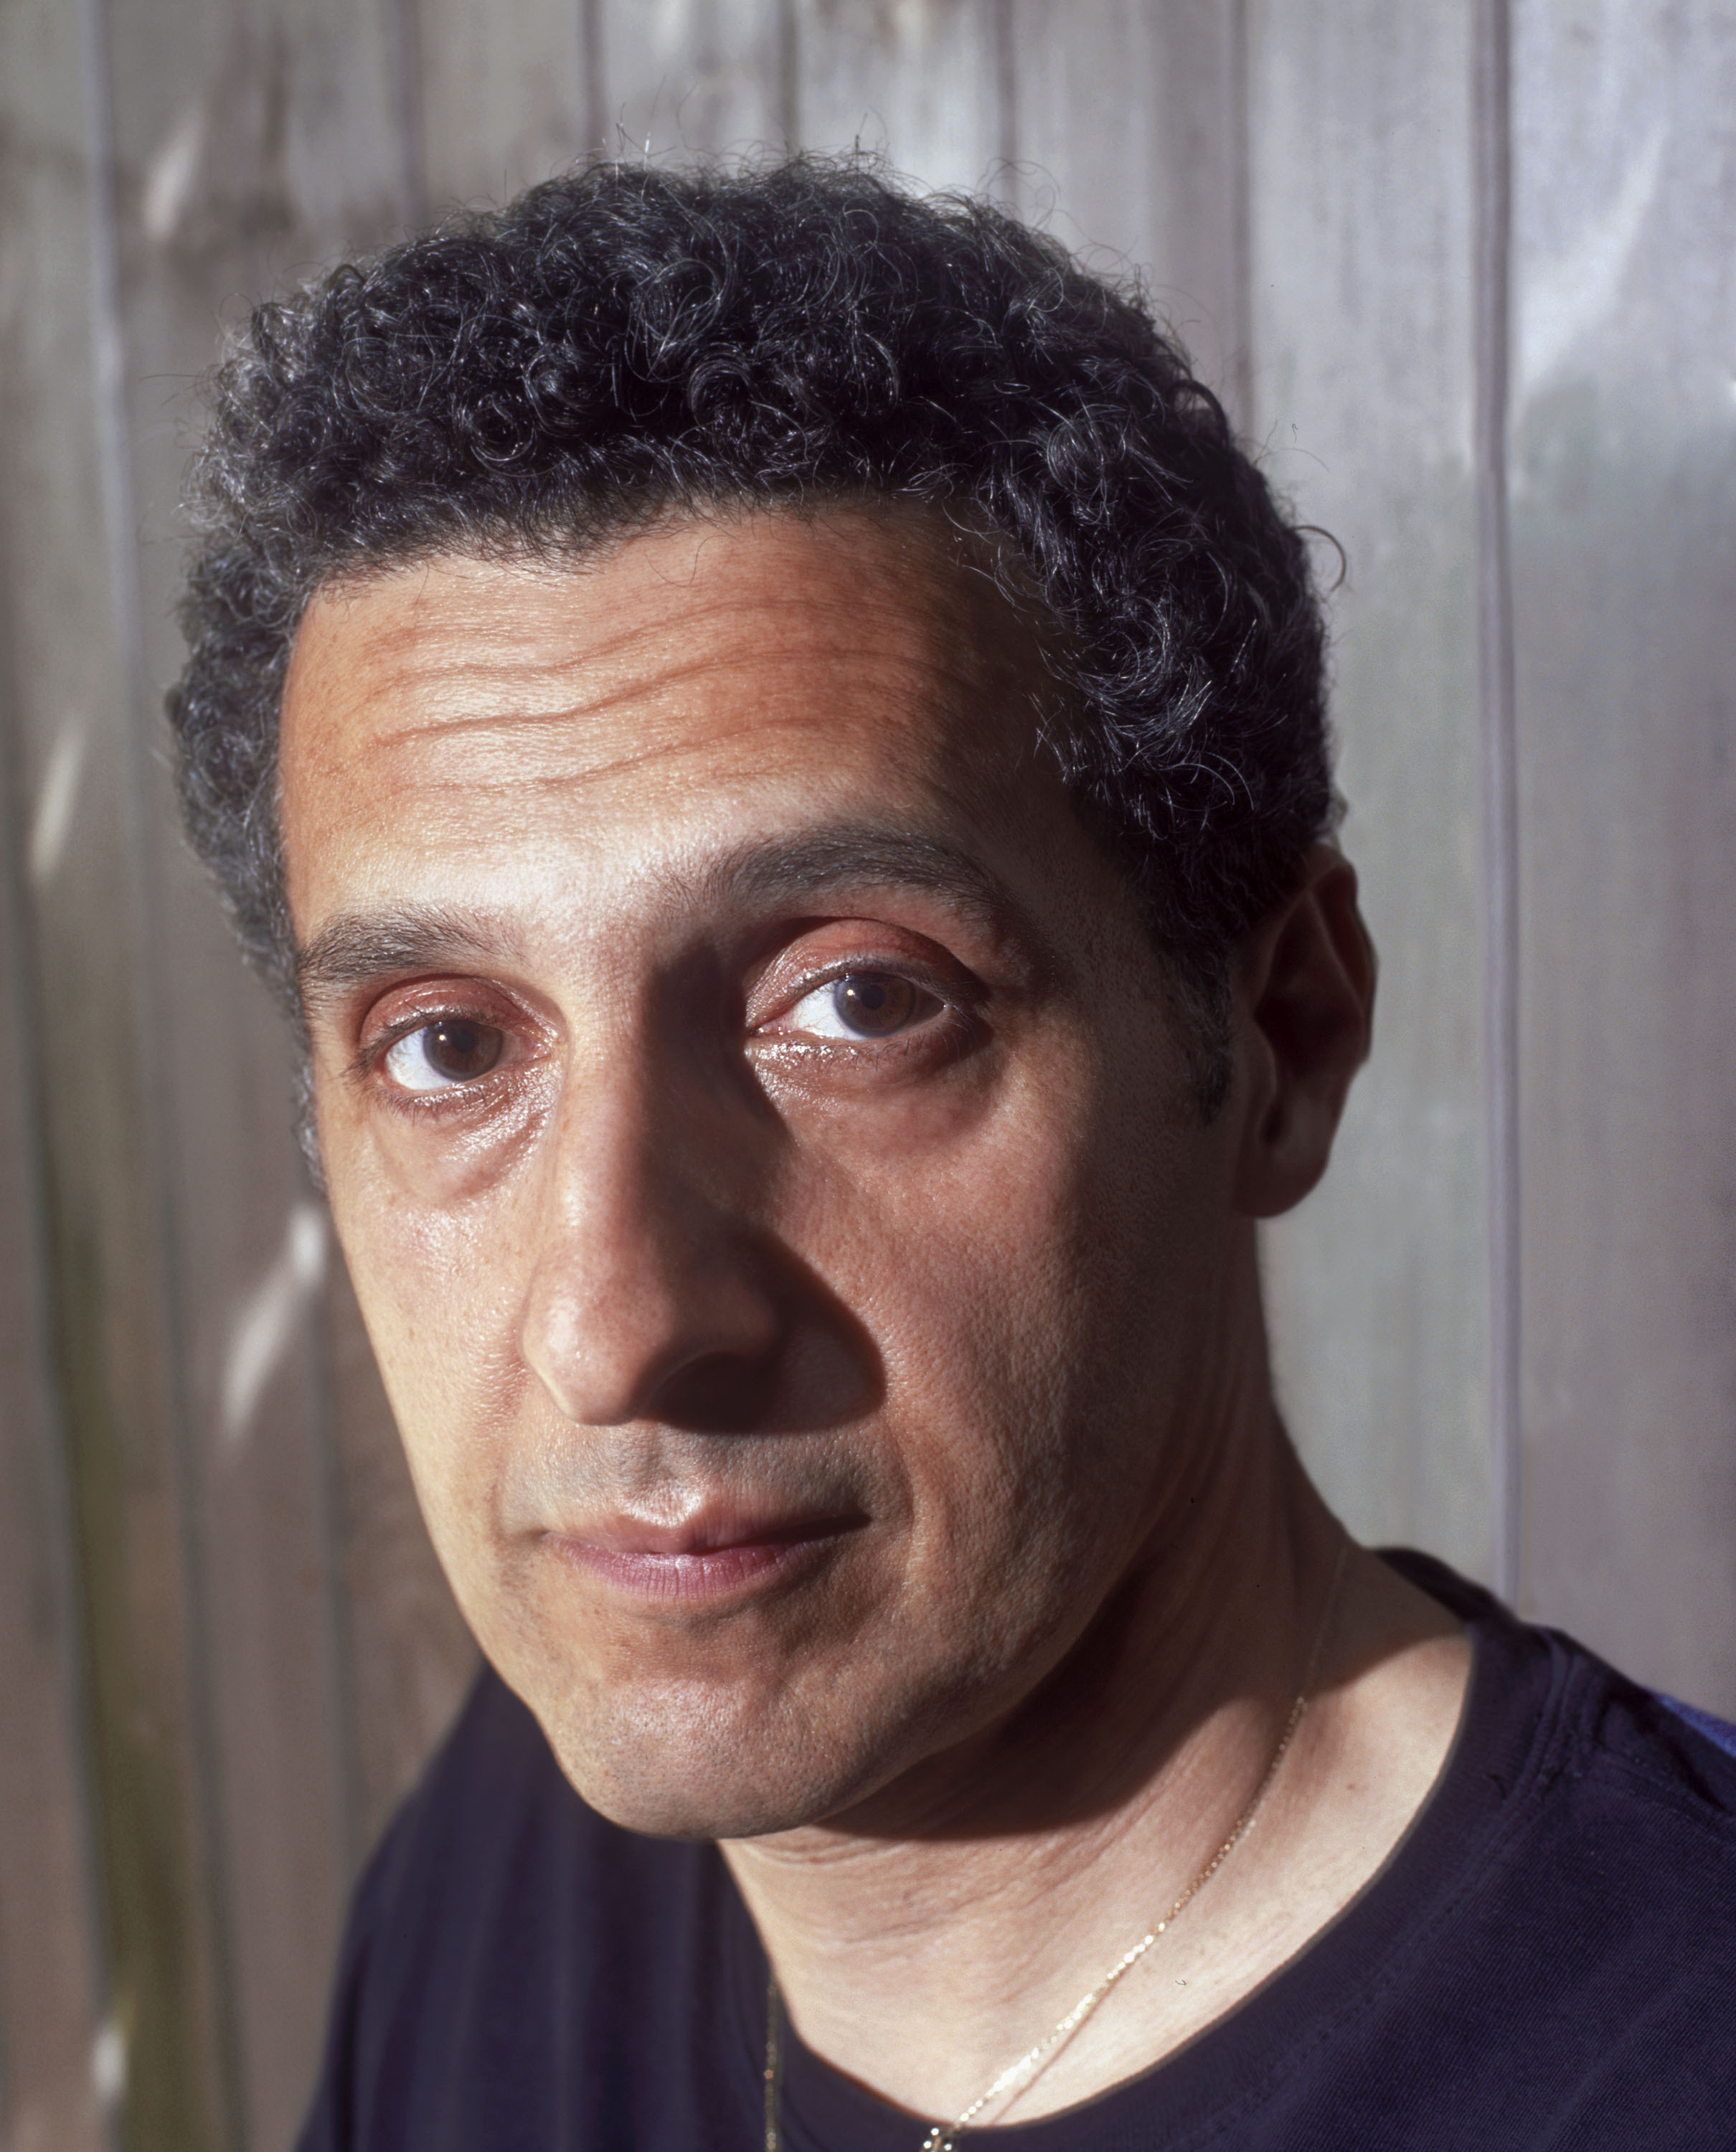 john turturro woody allen moviejohn turturro young, john turturro passione, john turturro actor, john turturro big lebowski, john turturro wiki, john turturro wife, john turturro woody allen, john turturro facebook, john turturro filmography, john turturro height, john turturro imdb, john turturro films, john turturro jesus, john turturro twitter, john turturro woody allen movie, john turturro director, john turturro the night of, john turturro family, john turturro quotes, john turturro george clooney